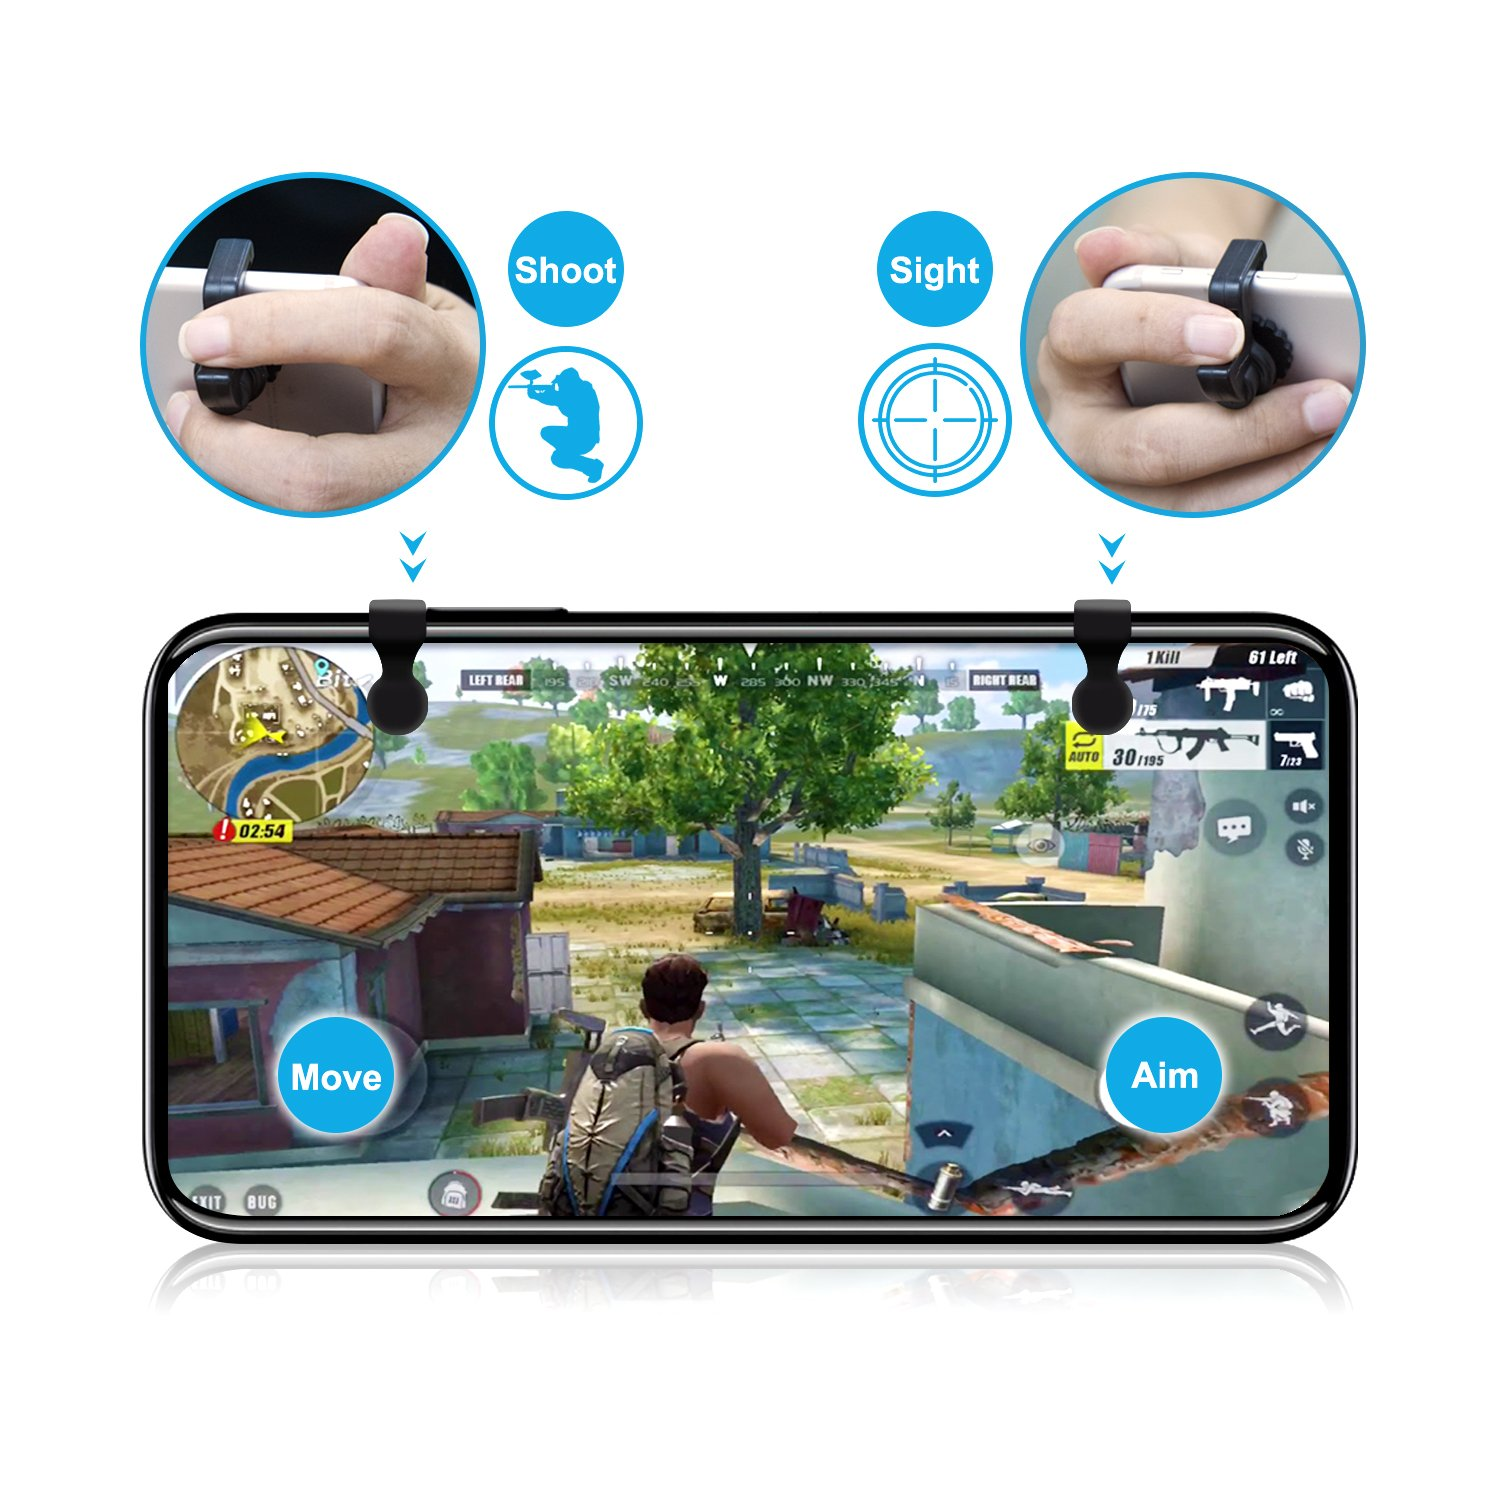 2Pairs -White Mobile Game Controller Fit for 4.5-6.5 Inch Android//iPhone Keten Highly Sensitive Sharpshooters Triggers Aiming Controllers for PUBG//Knives Out//Rules of Survival Upgraded Version